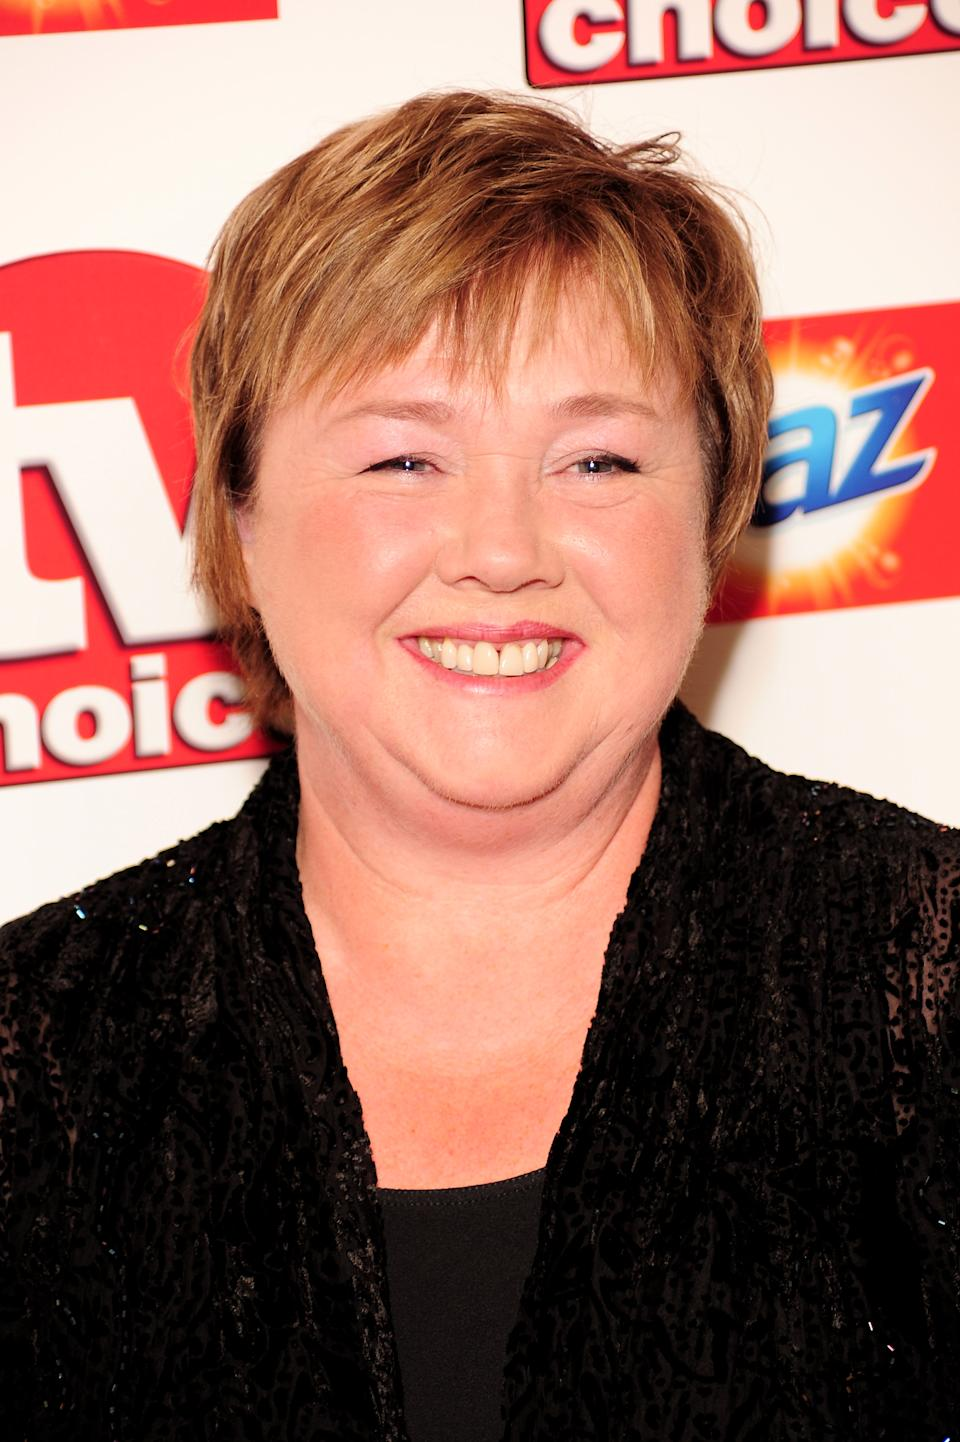 Pauline Quirke arrives at the TV Choice Awards 2010 at The Dorchester on September 6, 2010 in London, England.  (Photo by Ian Gavan/Getty Images)